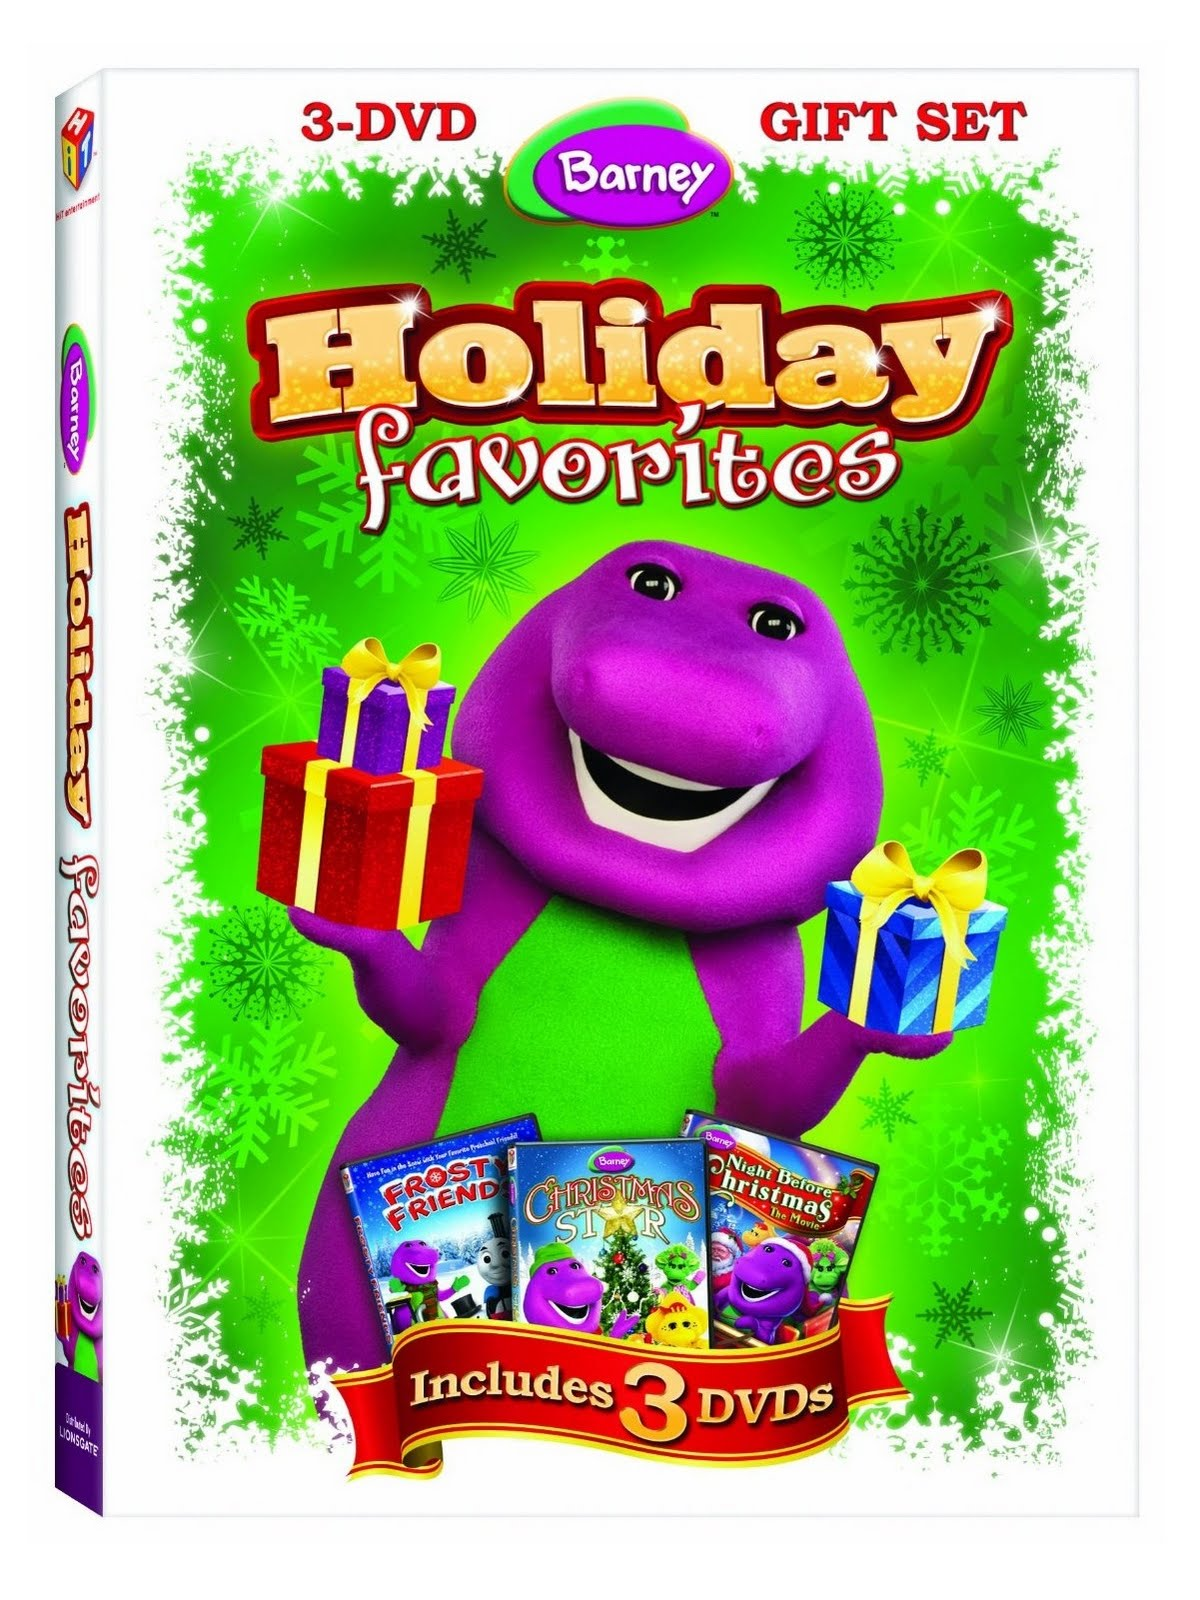 Barney A Very Merry Christmas The Movie Dvd.Thanks Mail Carrier Thomas Friends Barney Angelina